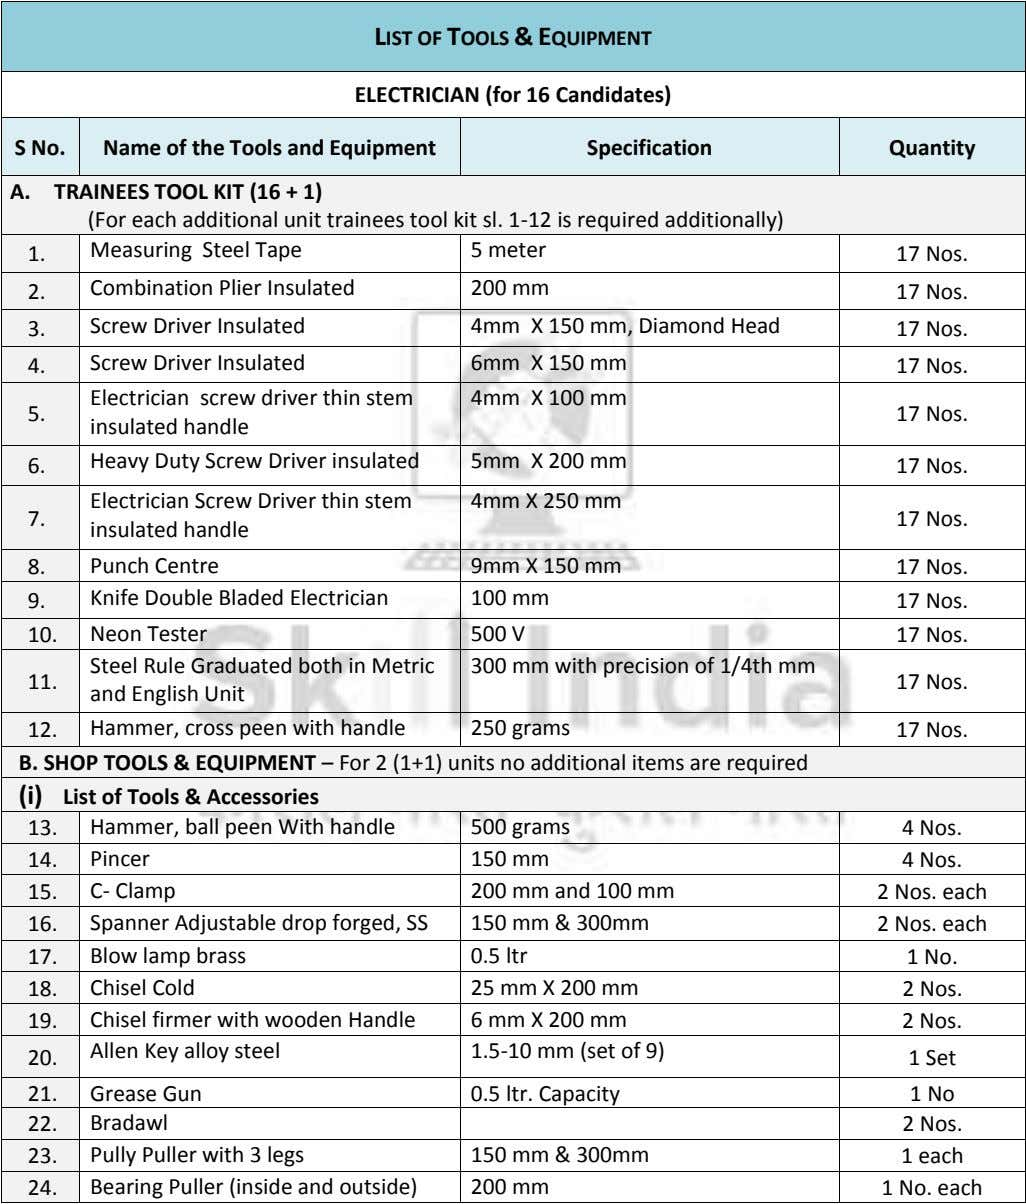 LIST OF TOOLS & EQUIPMENT ELECTRICIAN (for 16 Candidates) S No. Name of the Tools